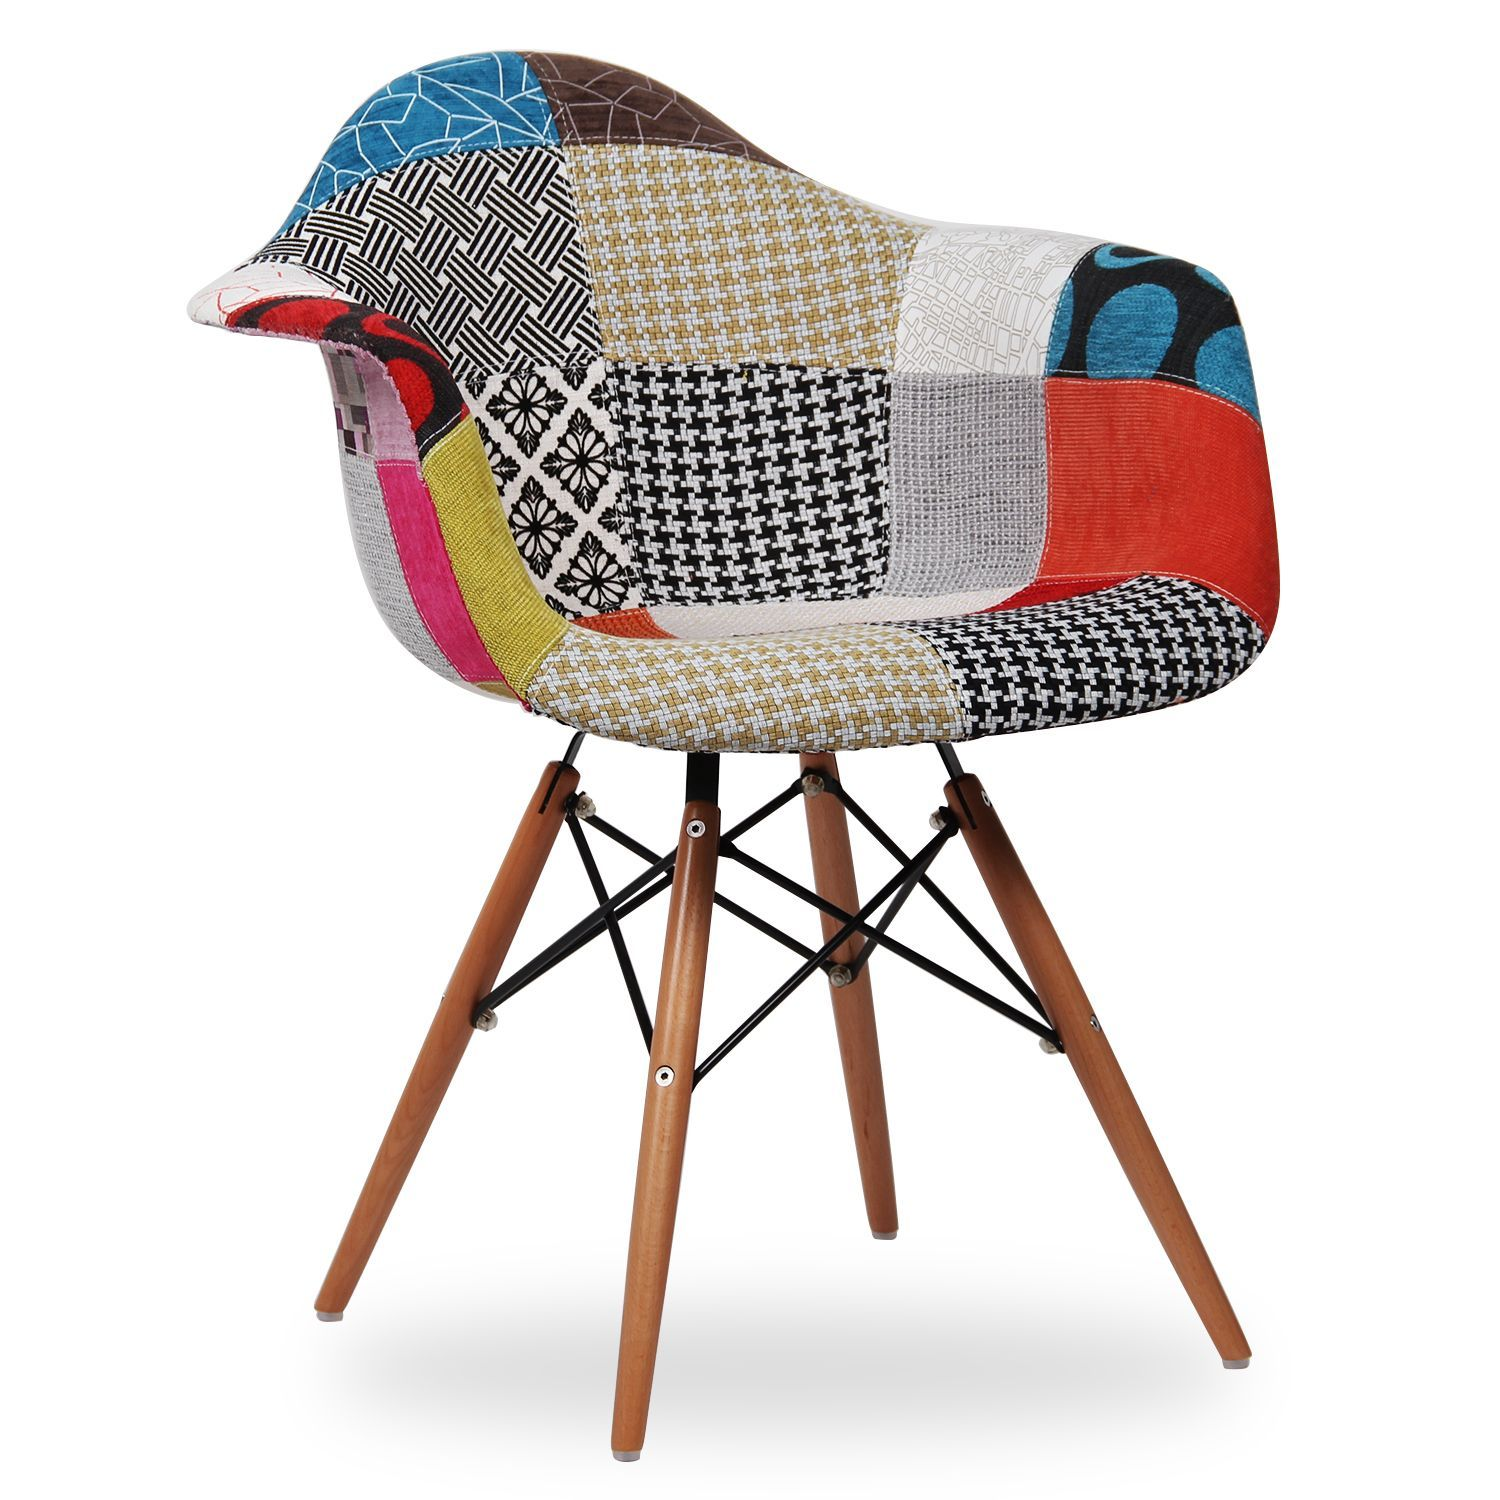 Silla WOODEN ARMS Patchwork Edition Sillas Icono Del Diseno